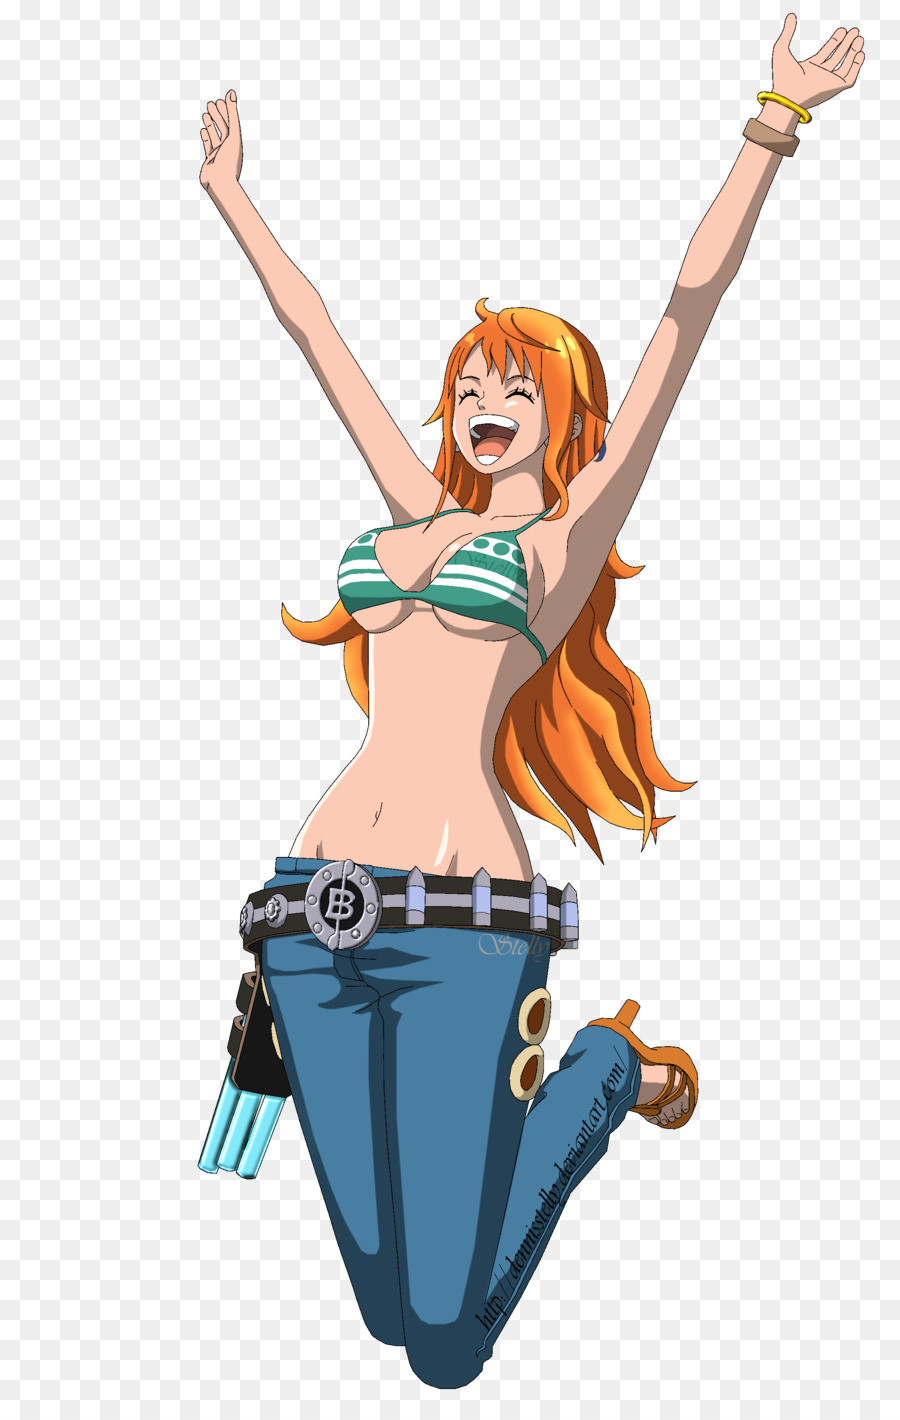 One Piece Nami Png & Free One Piece Nami.png Transparent.